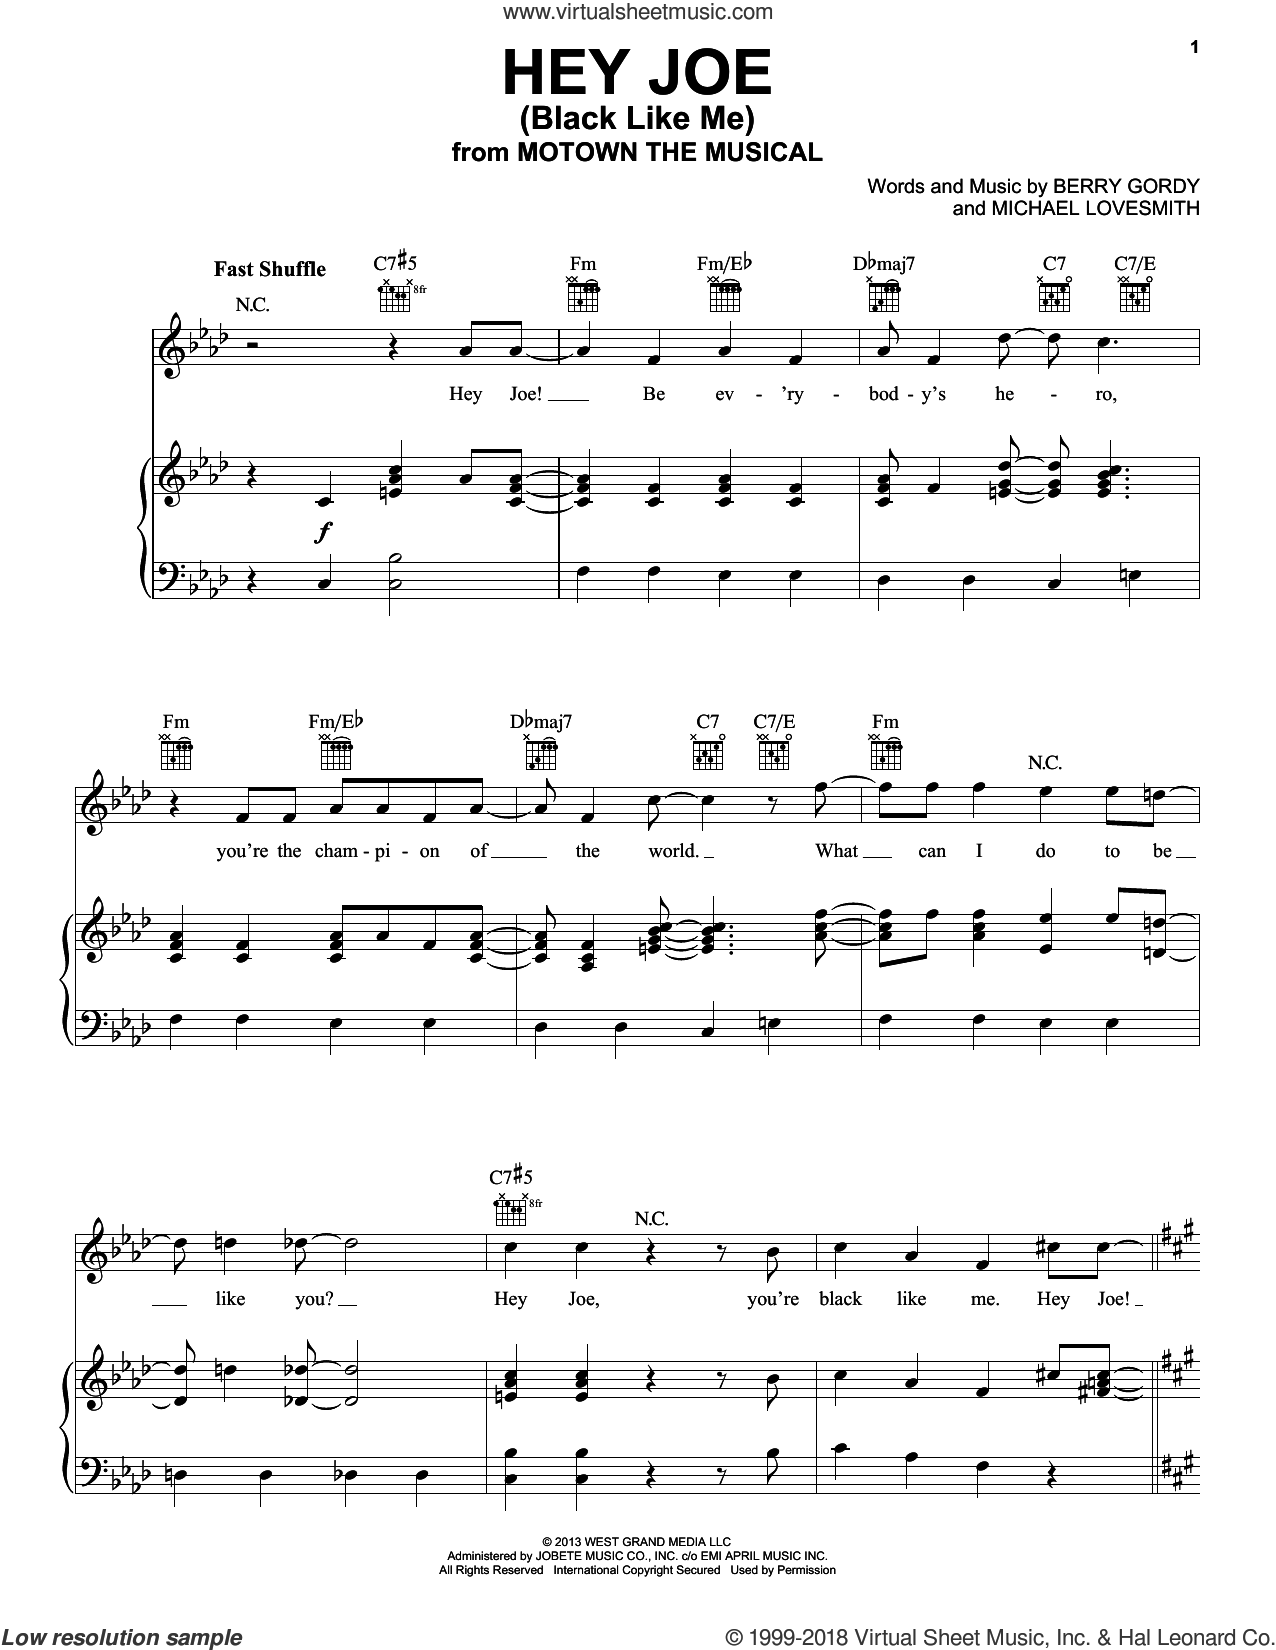 Hey Joe (Black Like Me) sheet music for voice, piano or guitar by Berry Gordy. Score Image Preview.